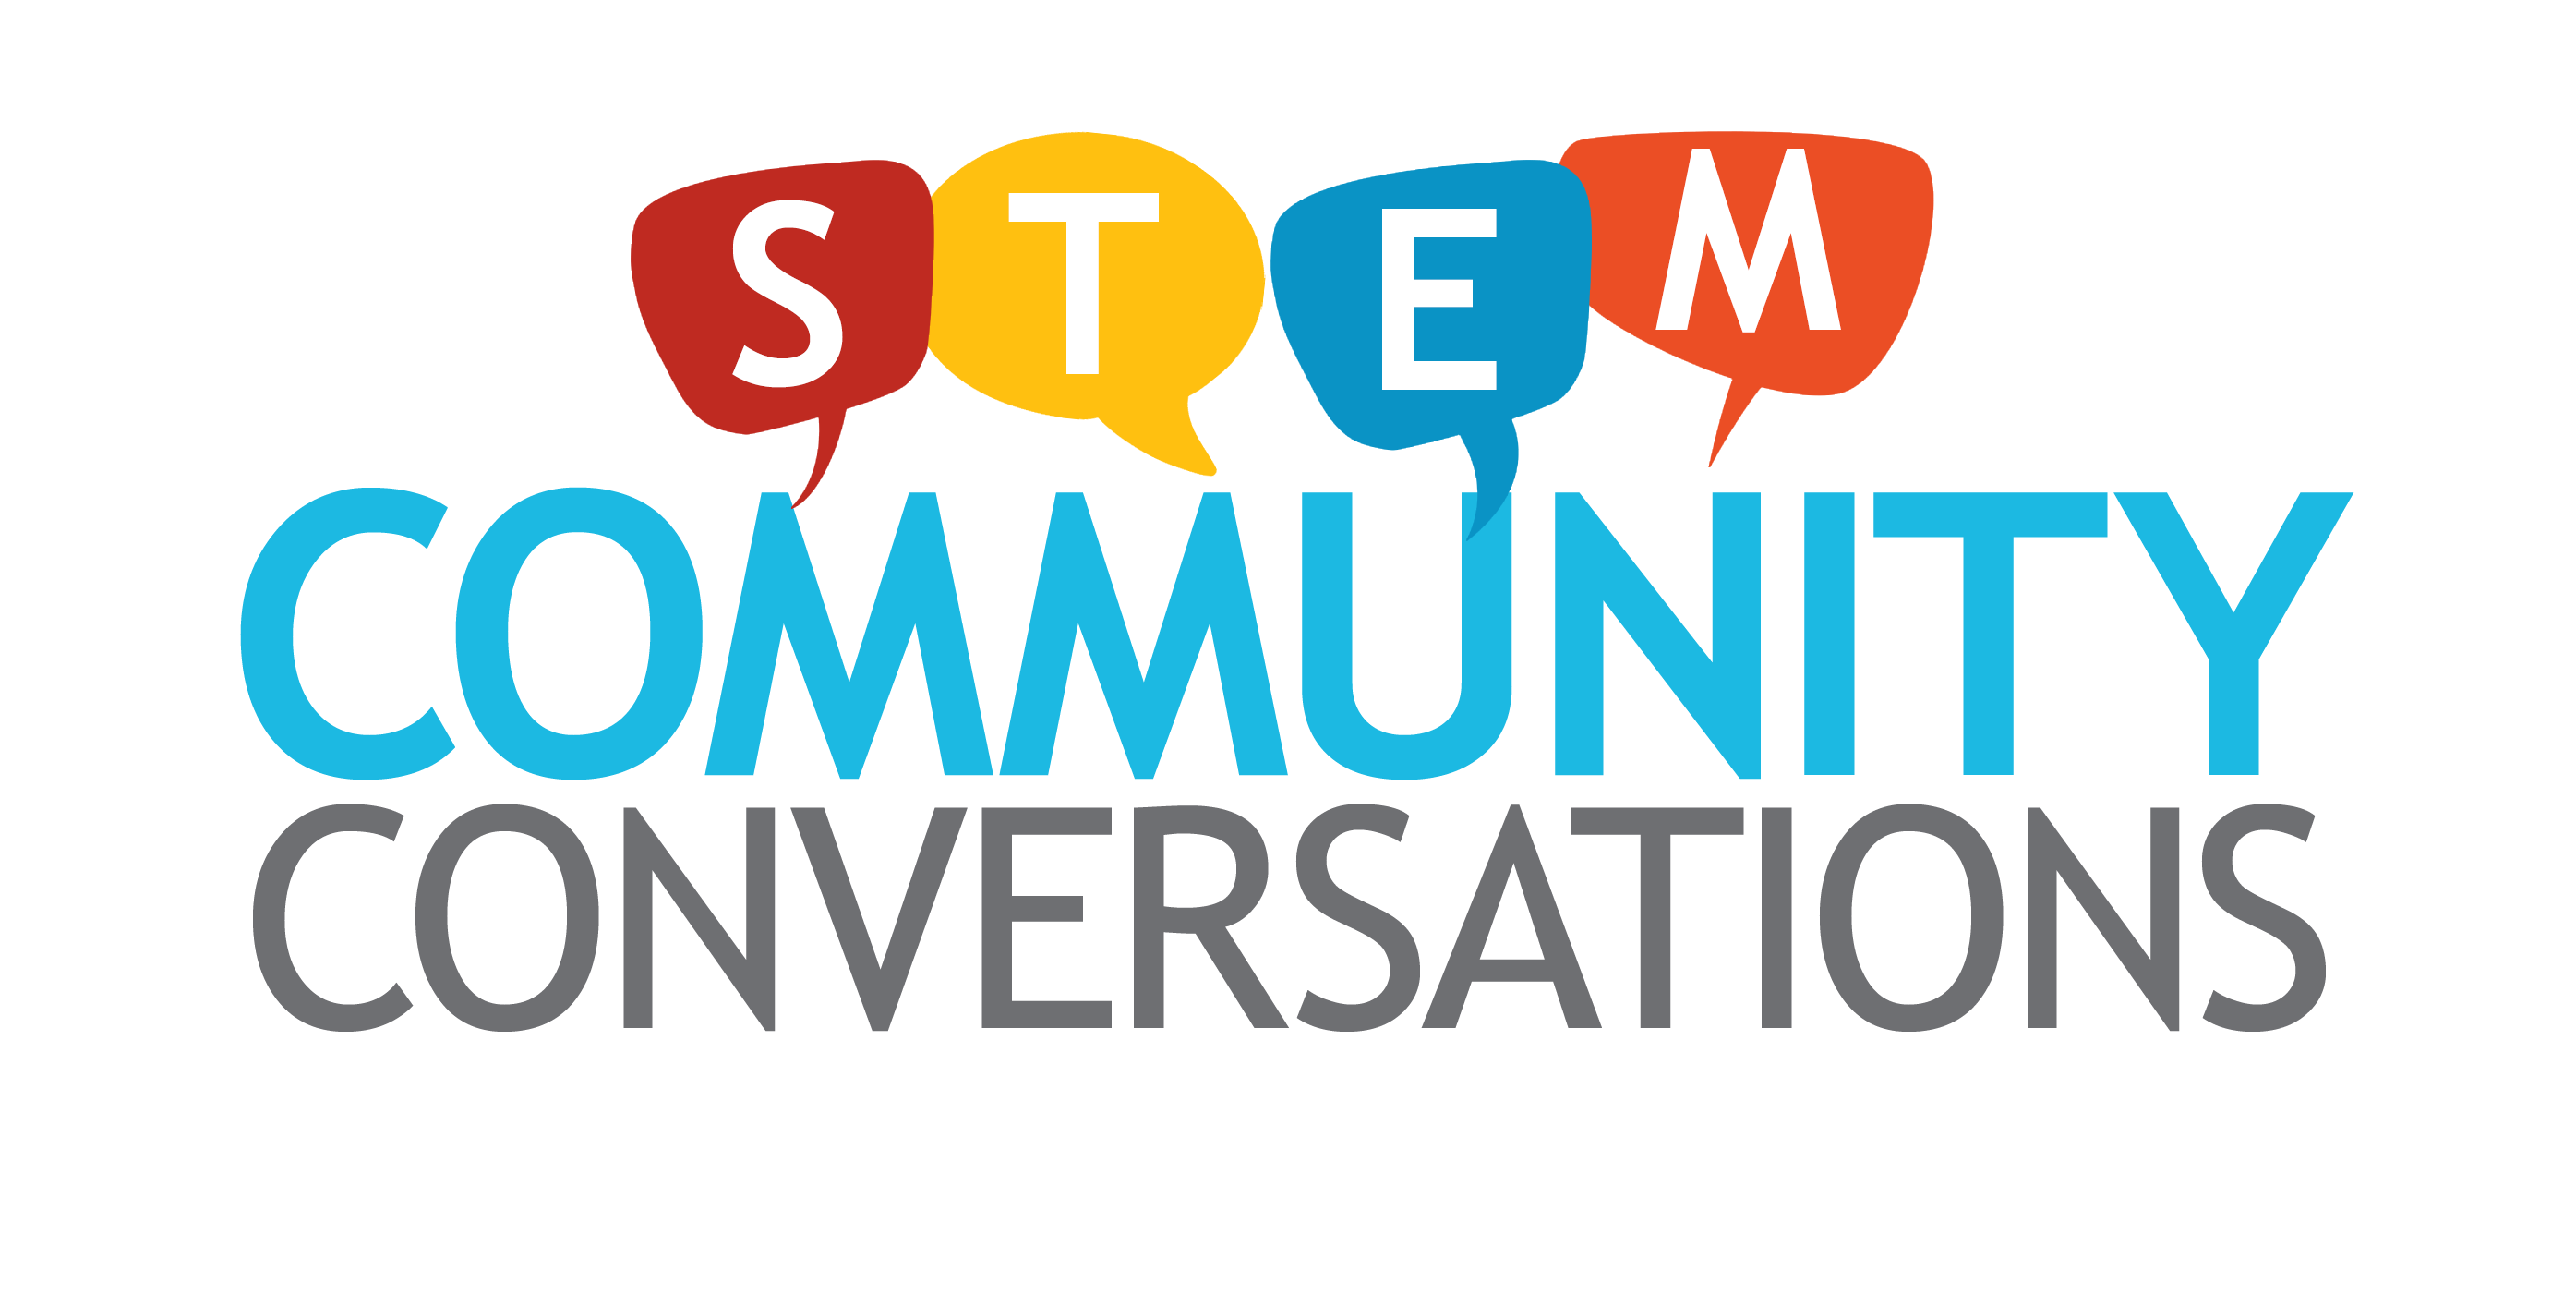 STEM Community Conversations